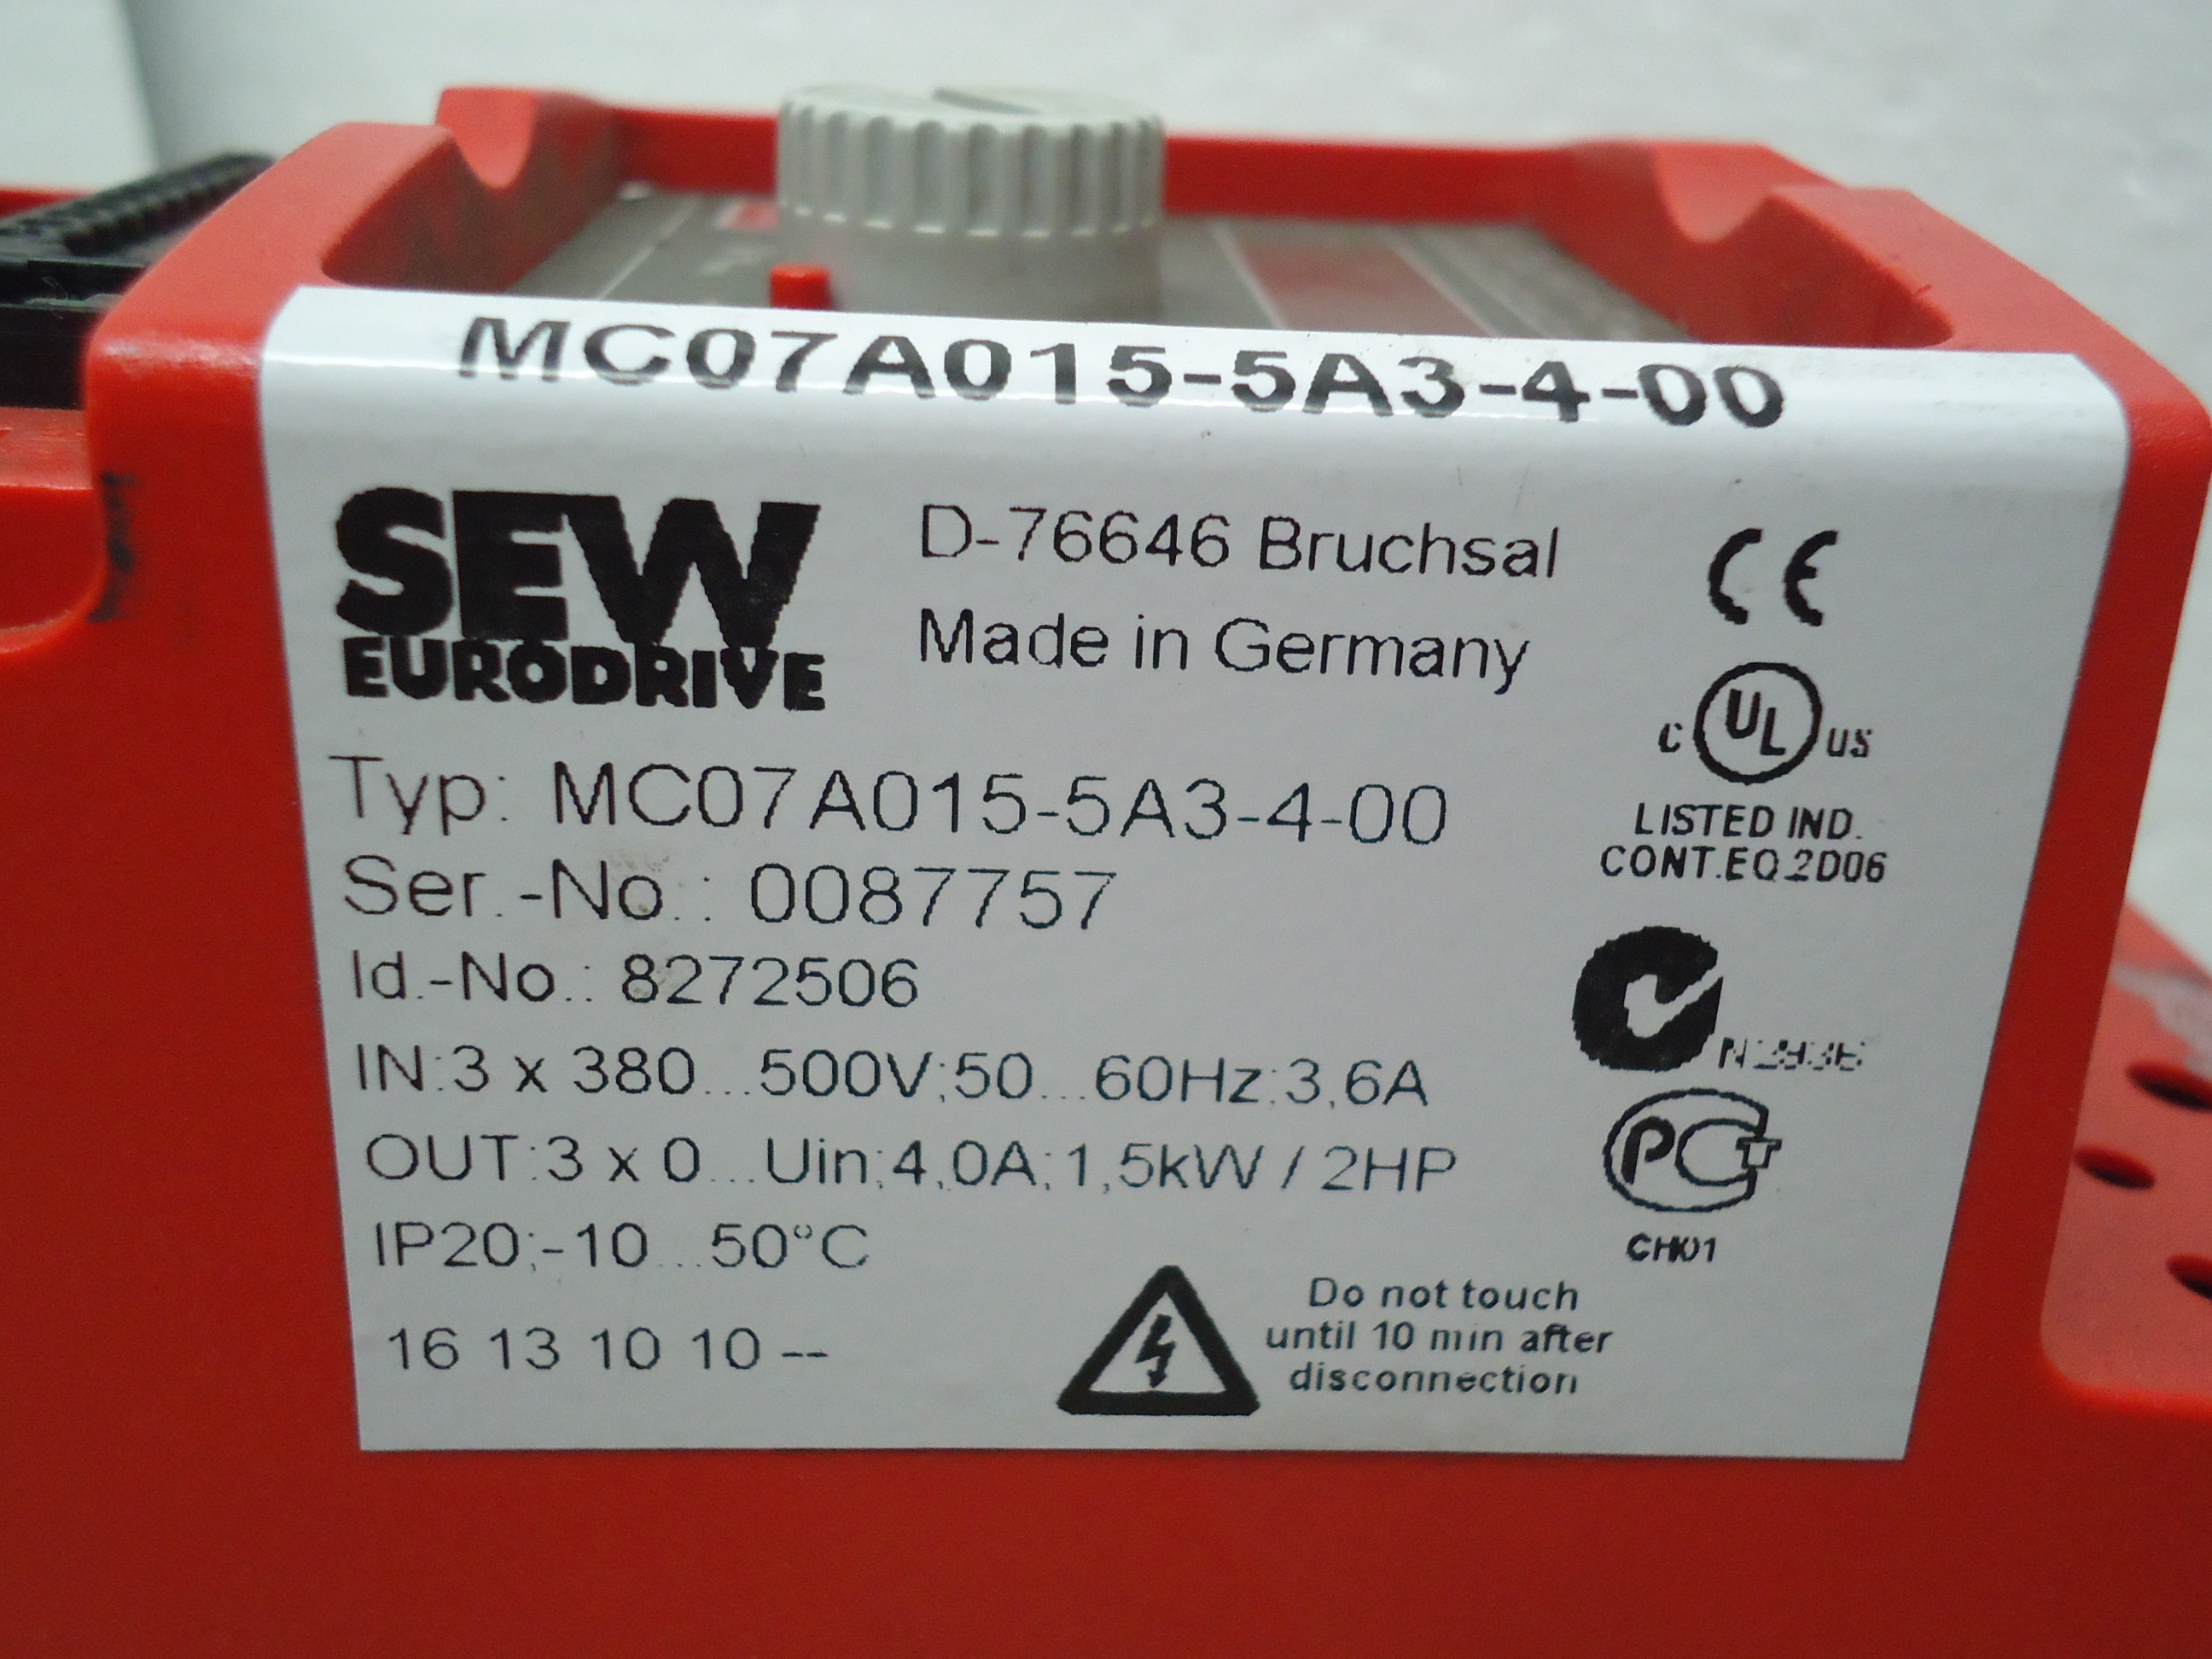 MC07A015-5A3-4-00 SEW Movitrac  sachnr0087757